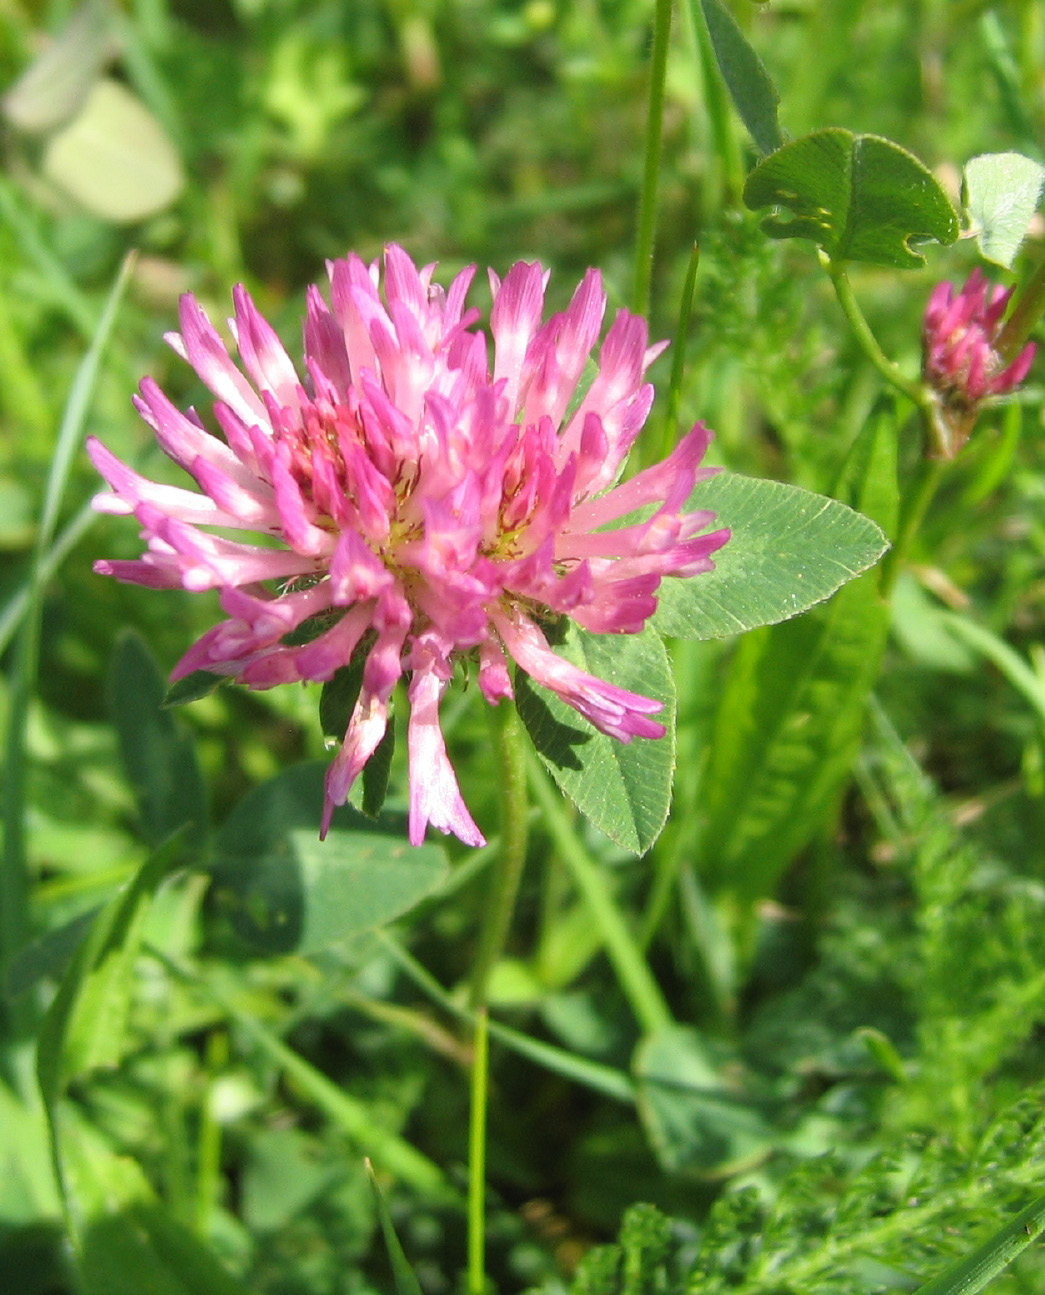 if you can be persuaded to cut your grass a little higher than usual, bees thrive on clover and fill the garden with activity and sleepy humming